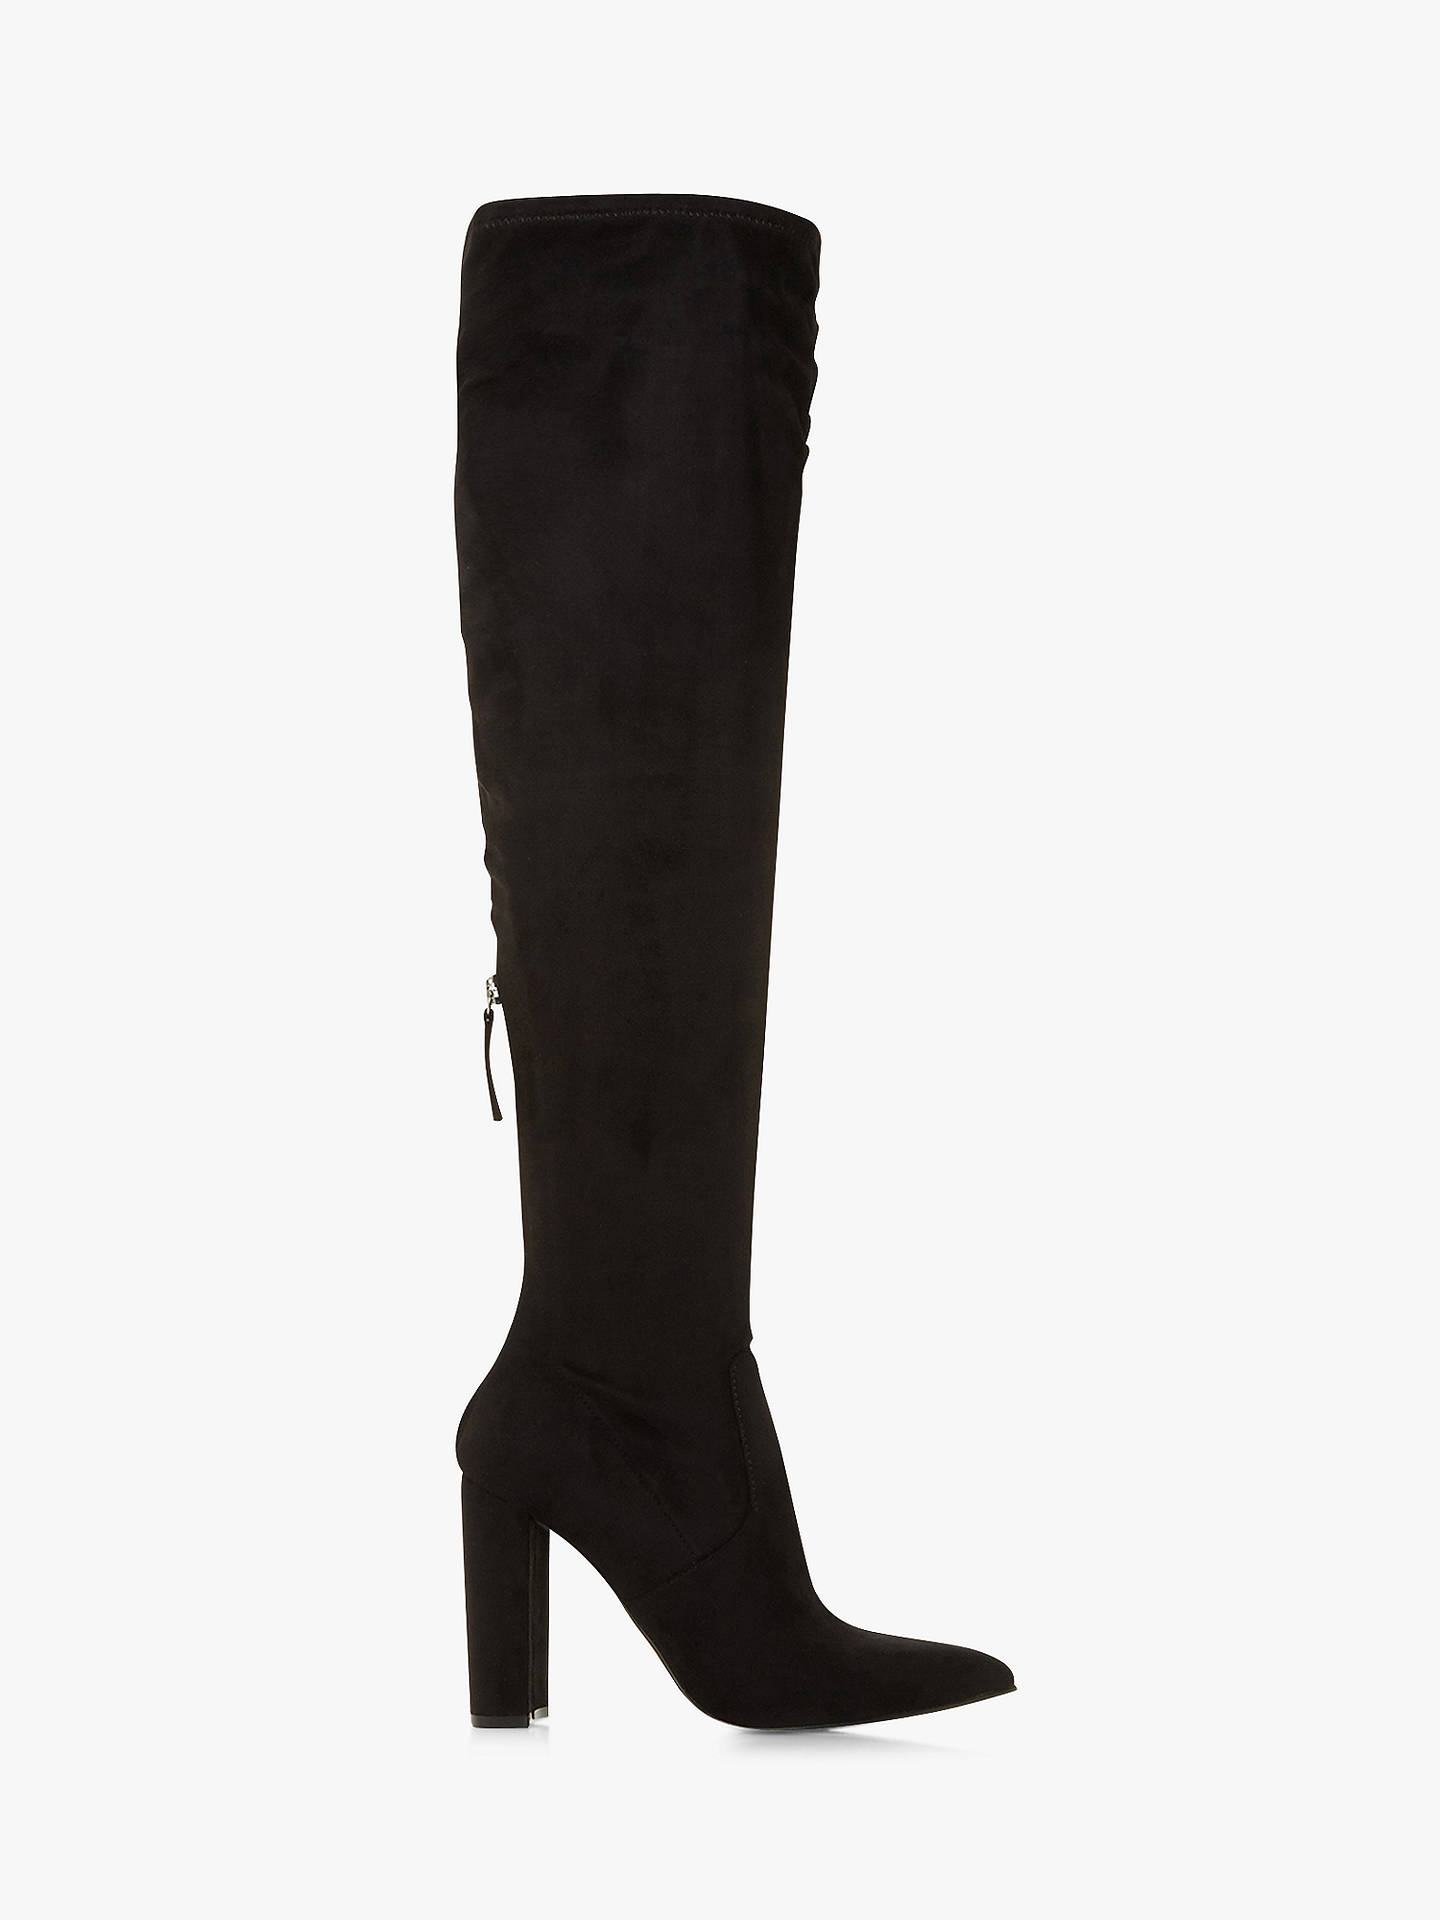 40b2d2707e8 Steve Madden Vent SM Over the Knee Boots, Black at John Lewis & Partners